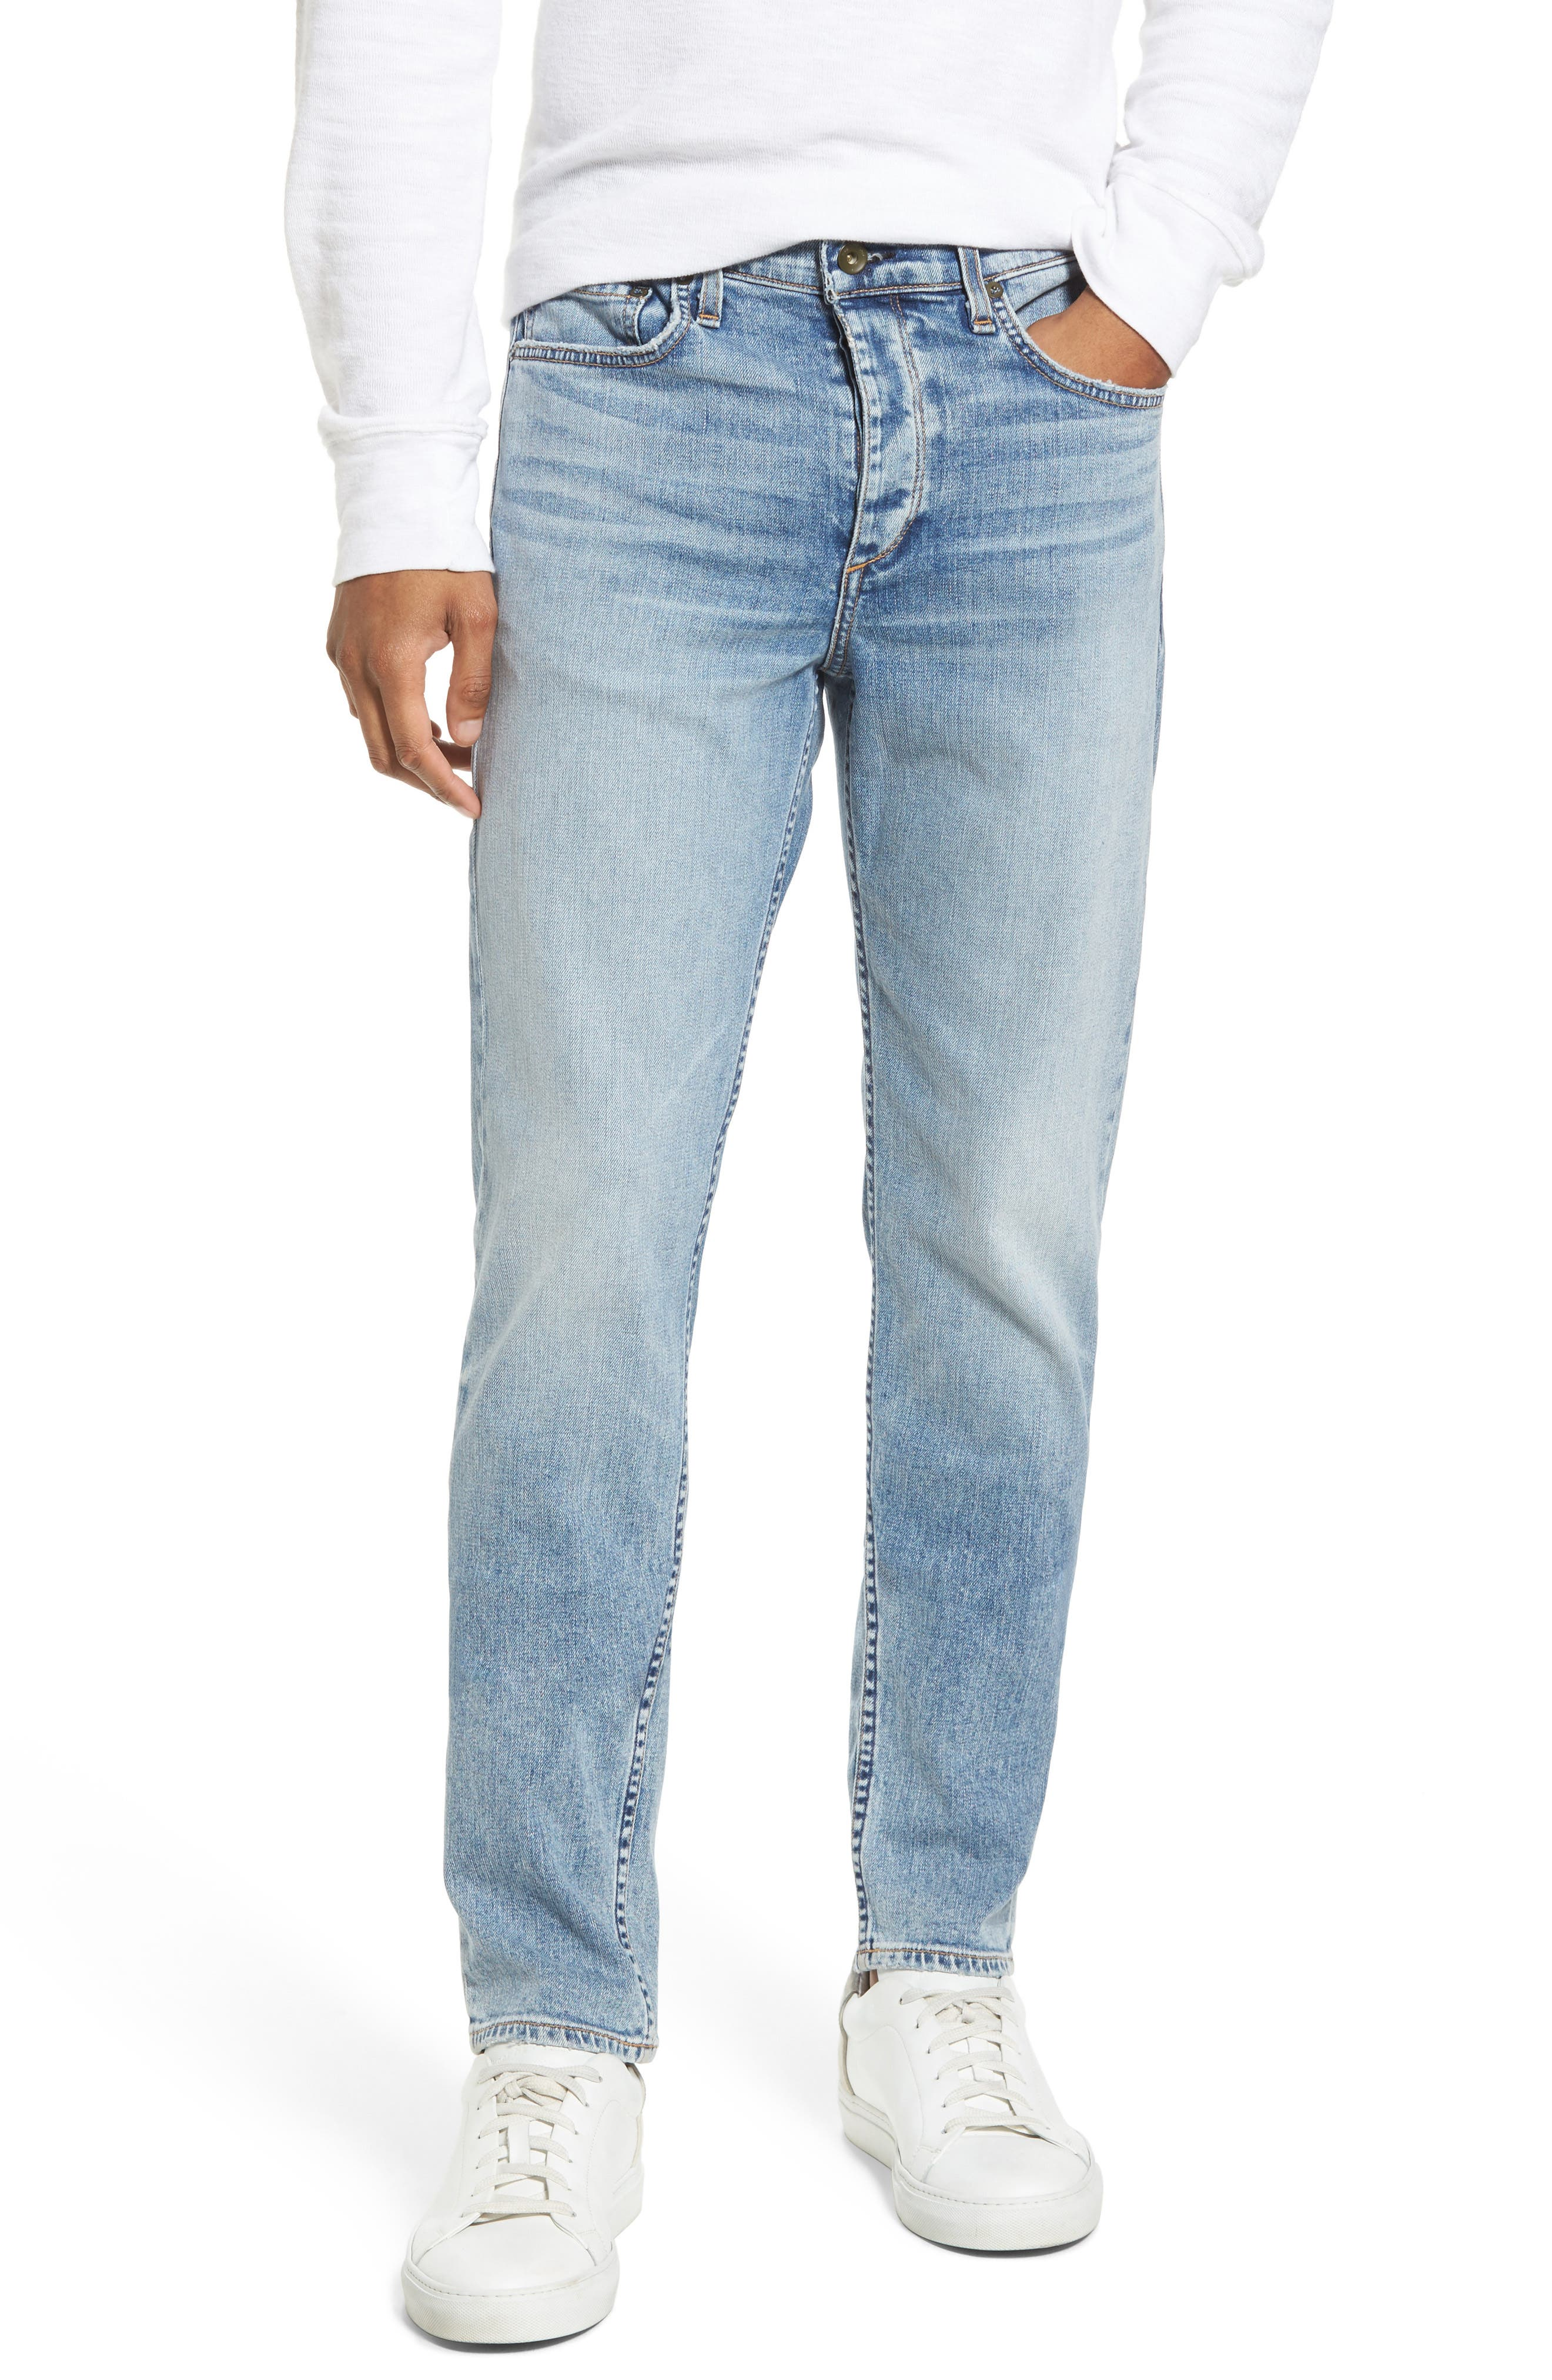 Fit 1 Skinny Fit Jeans,                             Main thumbnail 1, color,                             450